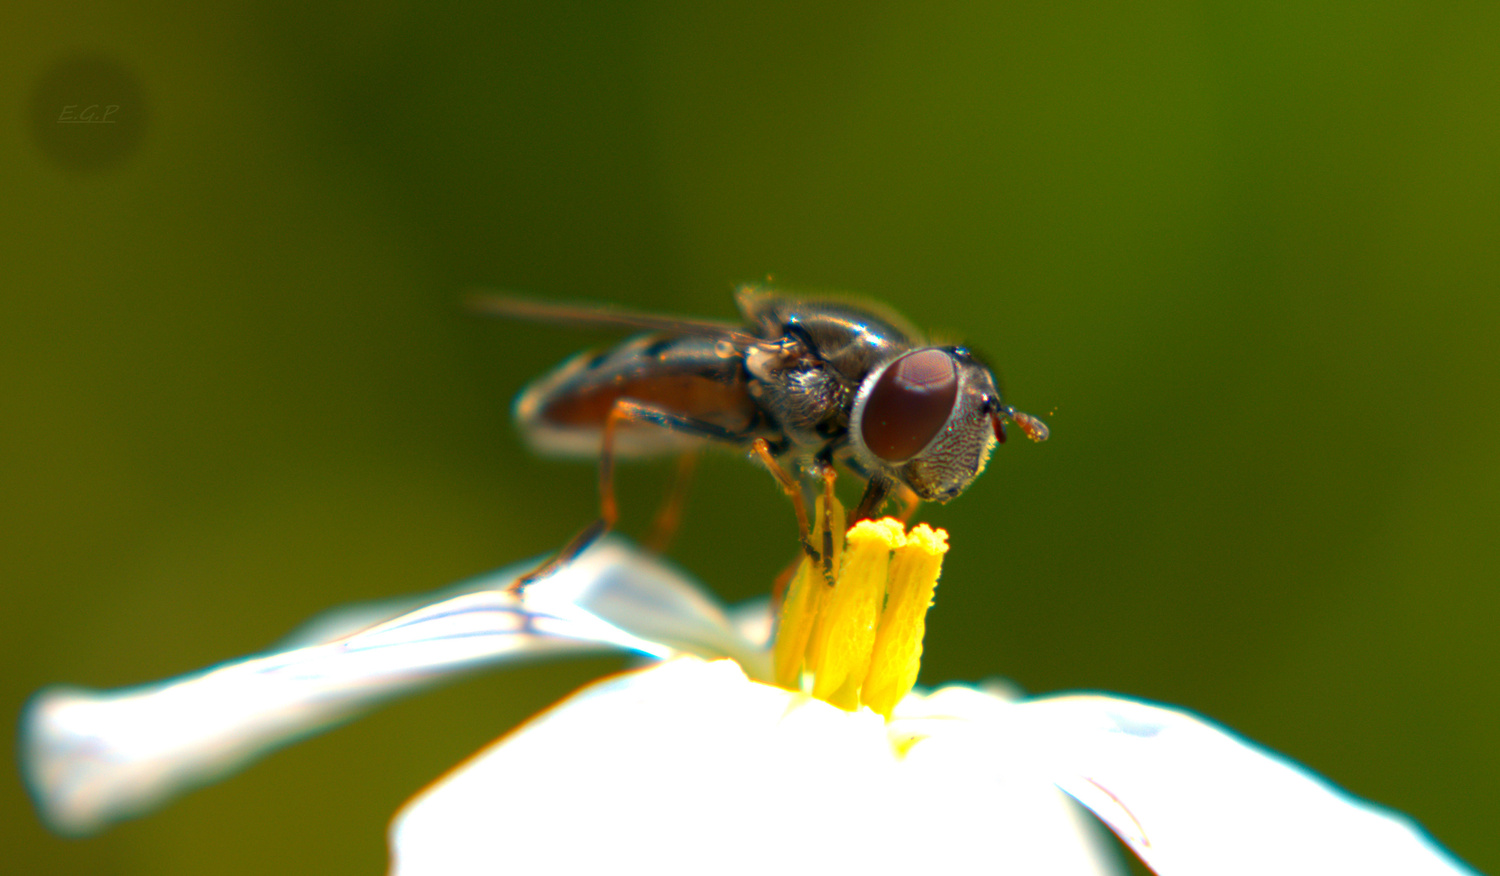 flower fly by Evan Graves